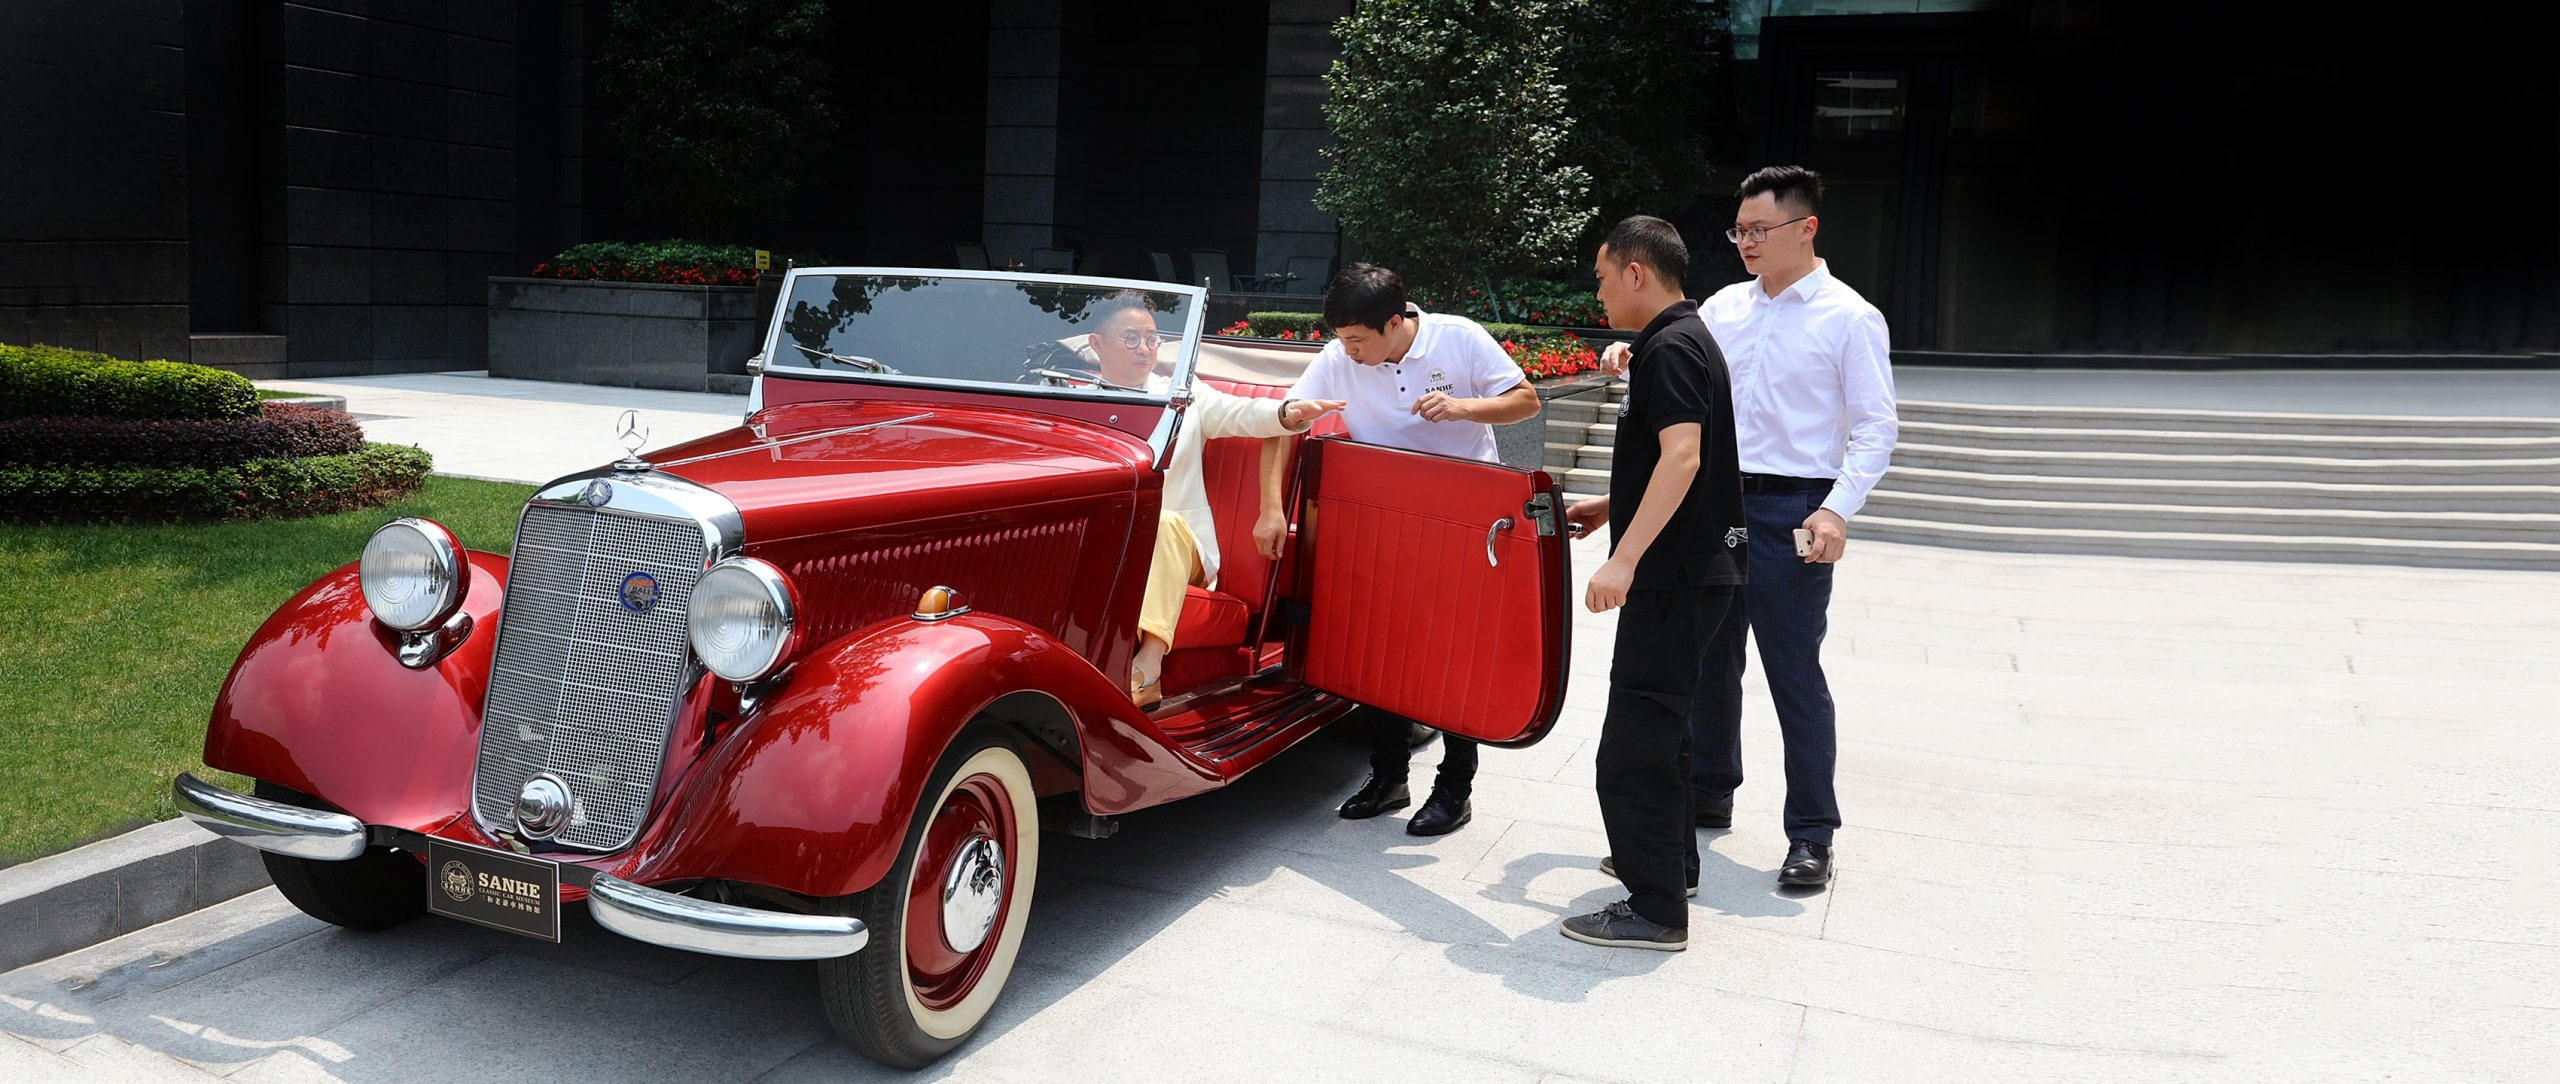 Love isn't blind, it's red: Zongmin Huang is at the wheel, about to take a spin in his Mercedes-Benz 170 D from 1951.